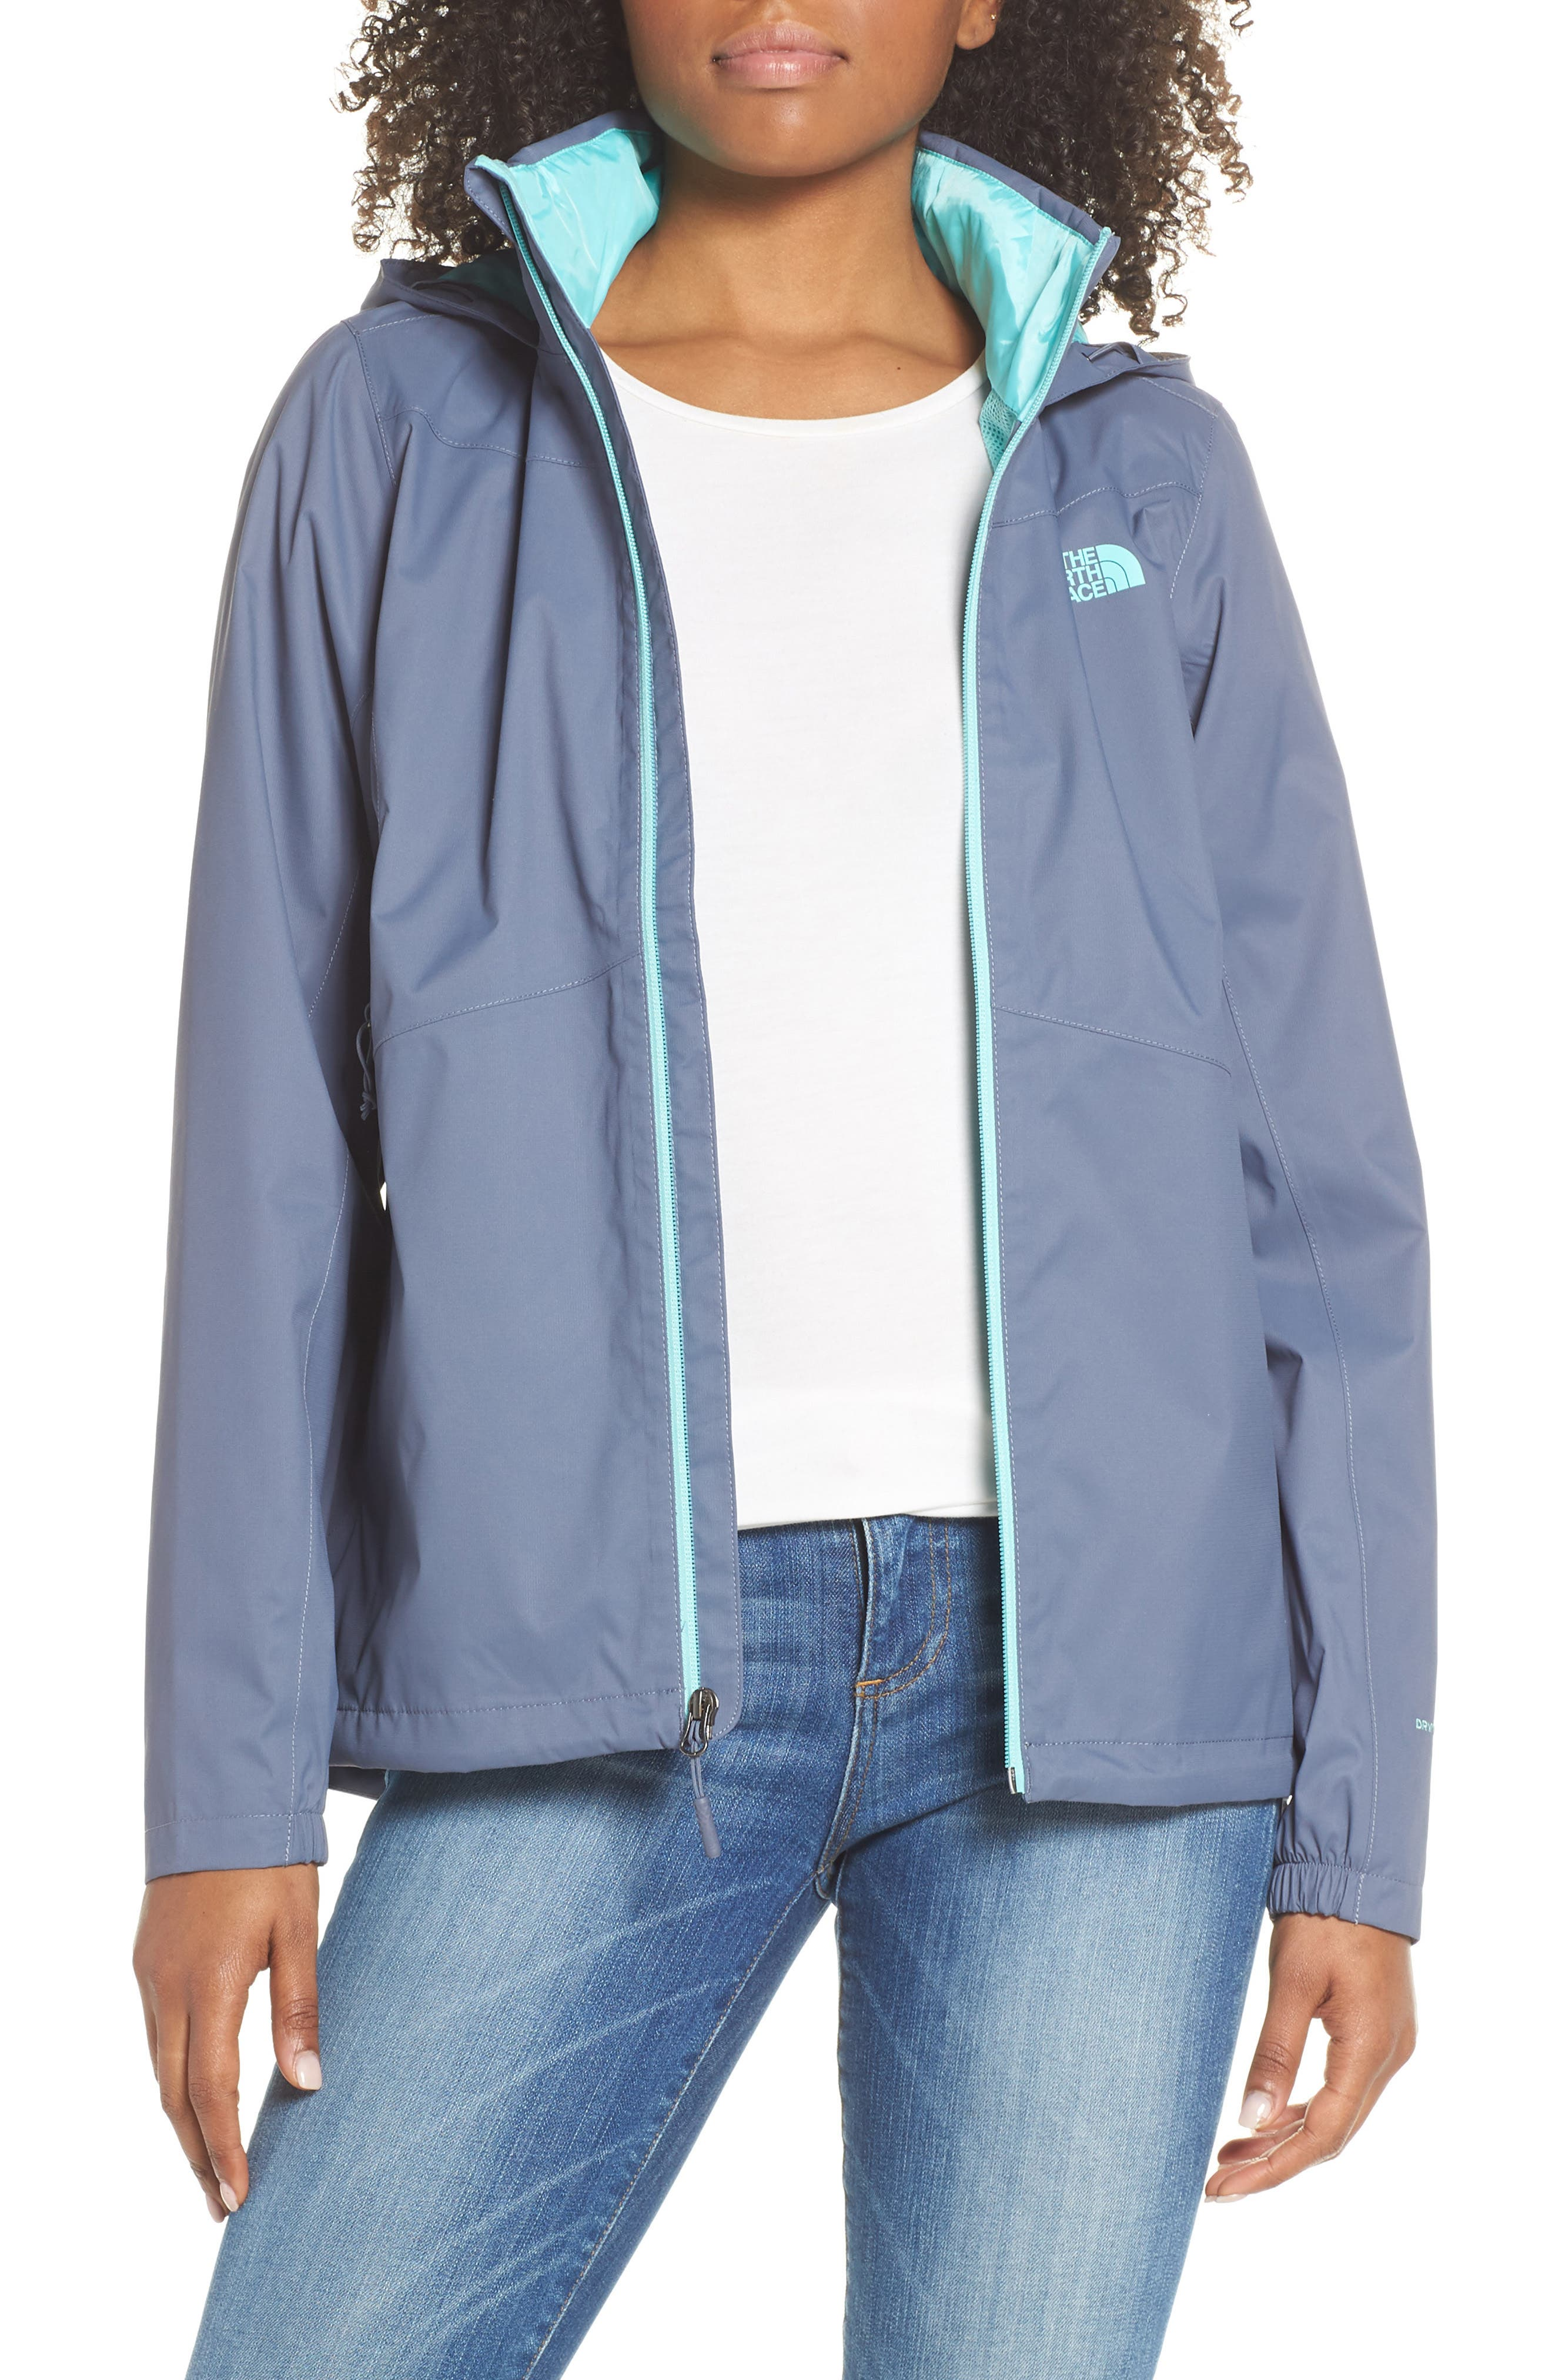 THE NORTH FACE Resolve Plus Waterproof Jacket, Main, color, GRISAILLE GREY/ GRISAILLE GREY